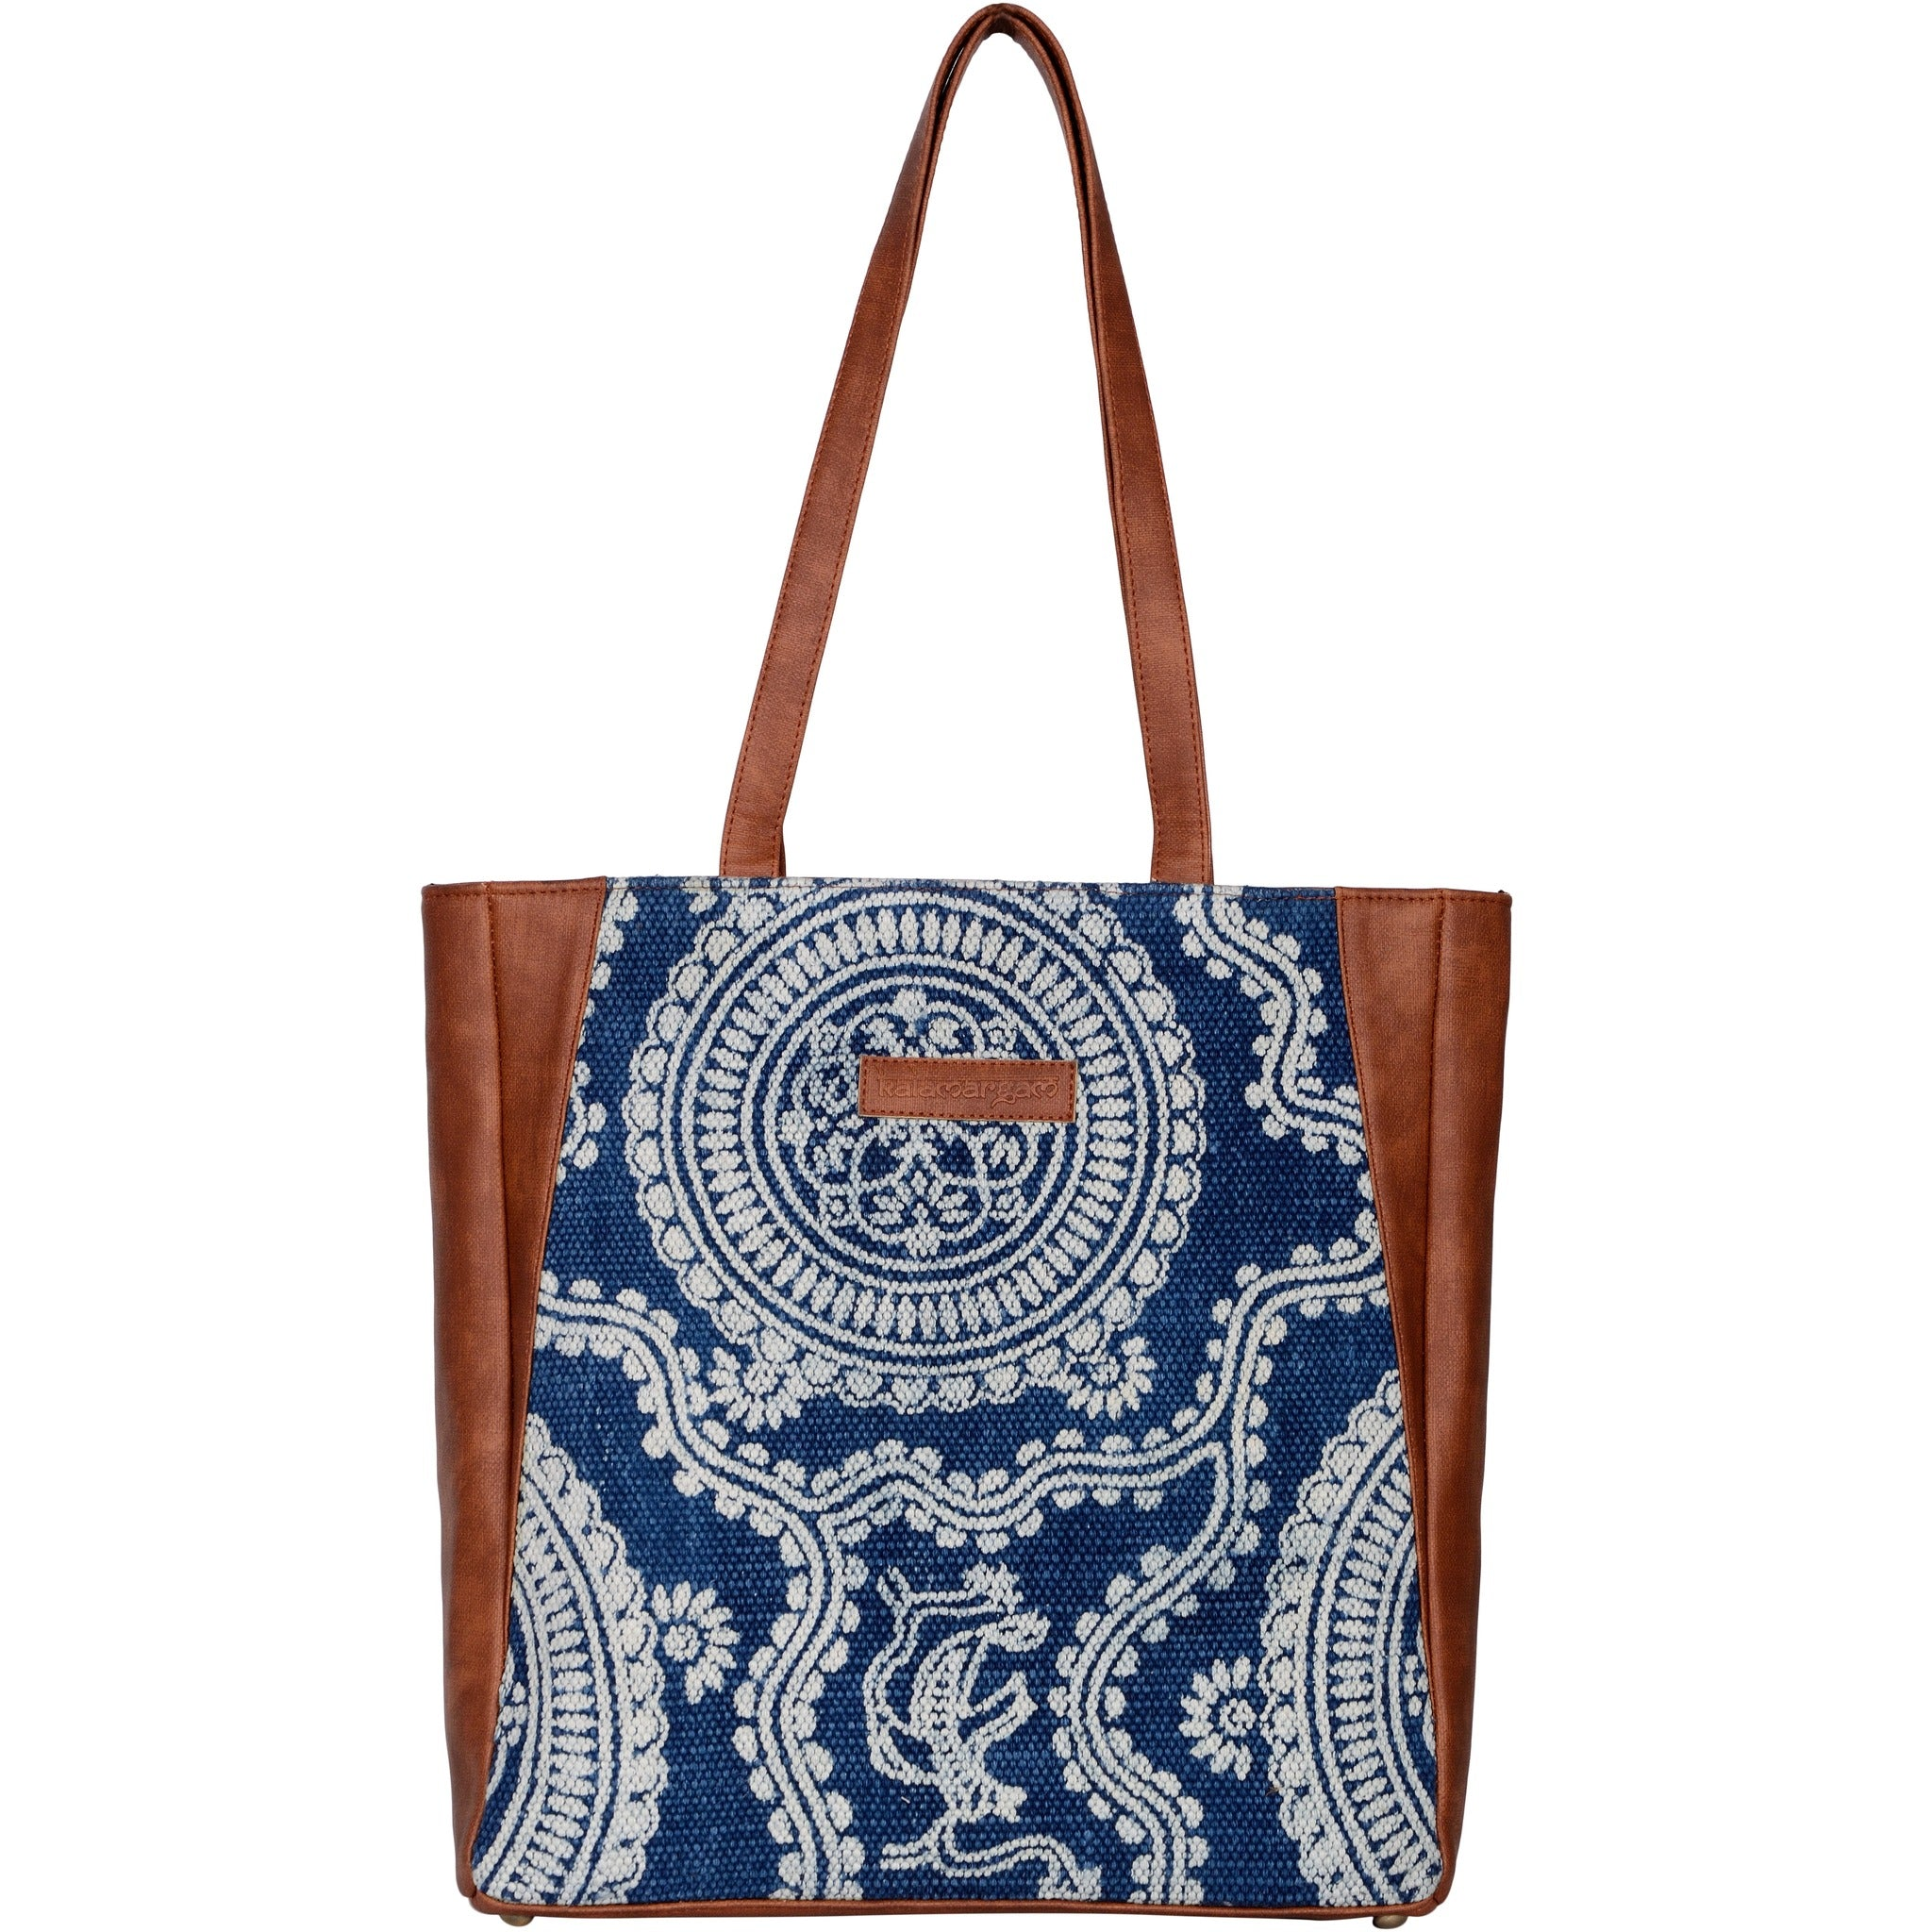 Desert Kilim & Vegan Leather Tote Bag